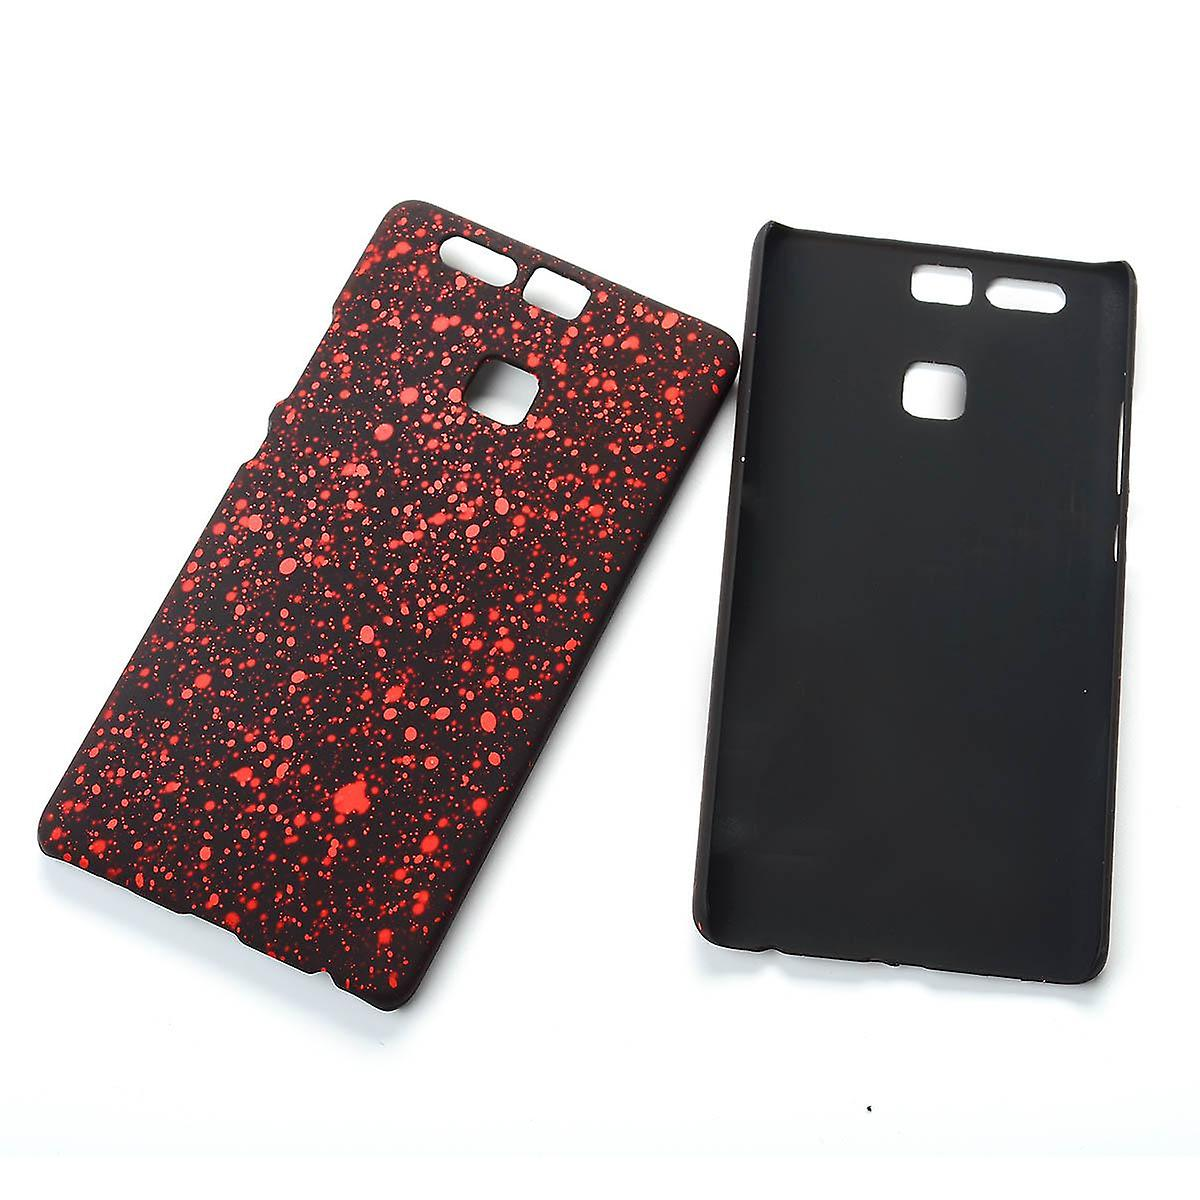 Cell phone cover case bumper shell for Huawei P9 3D stars red